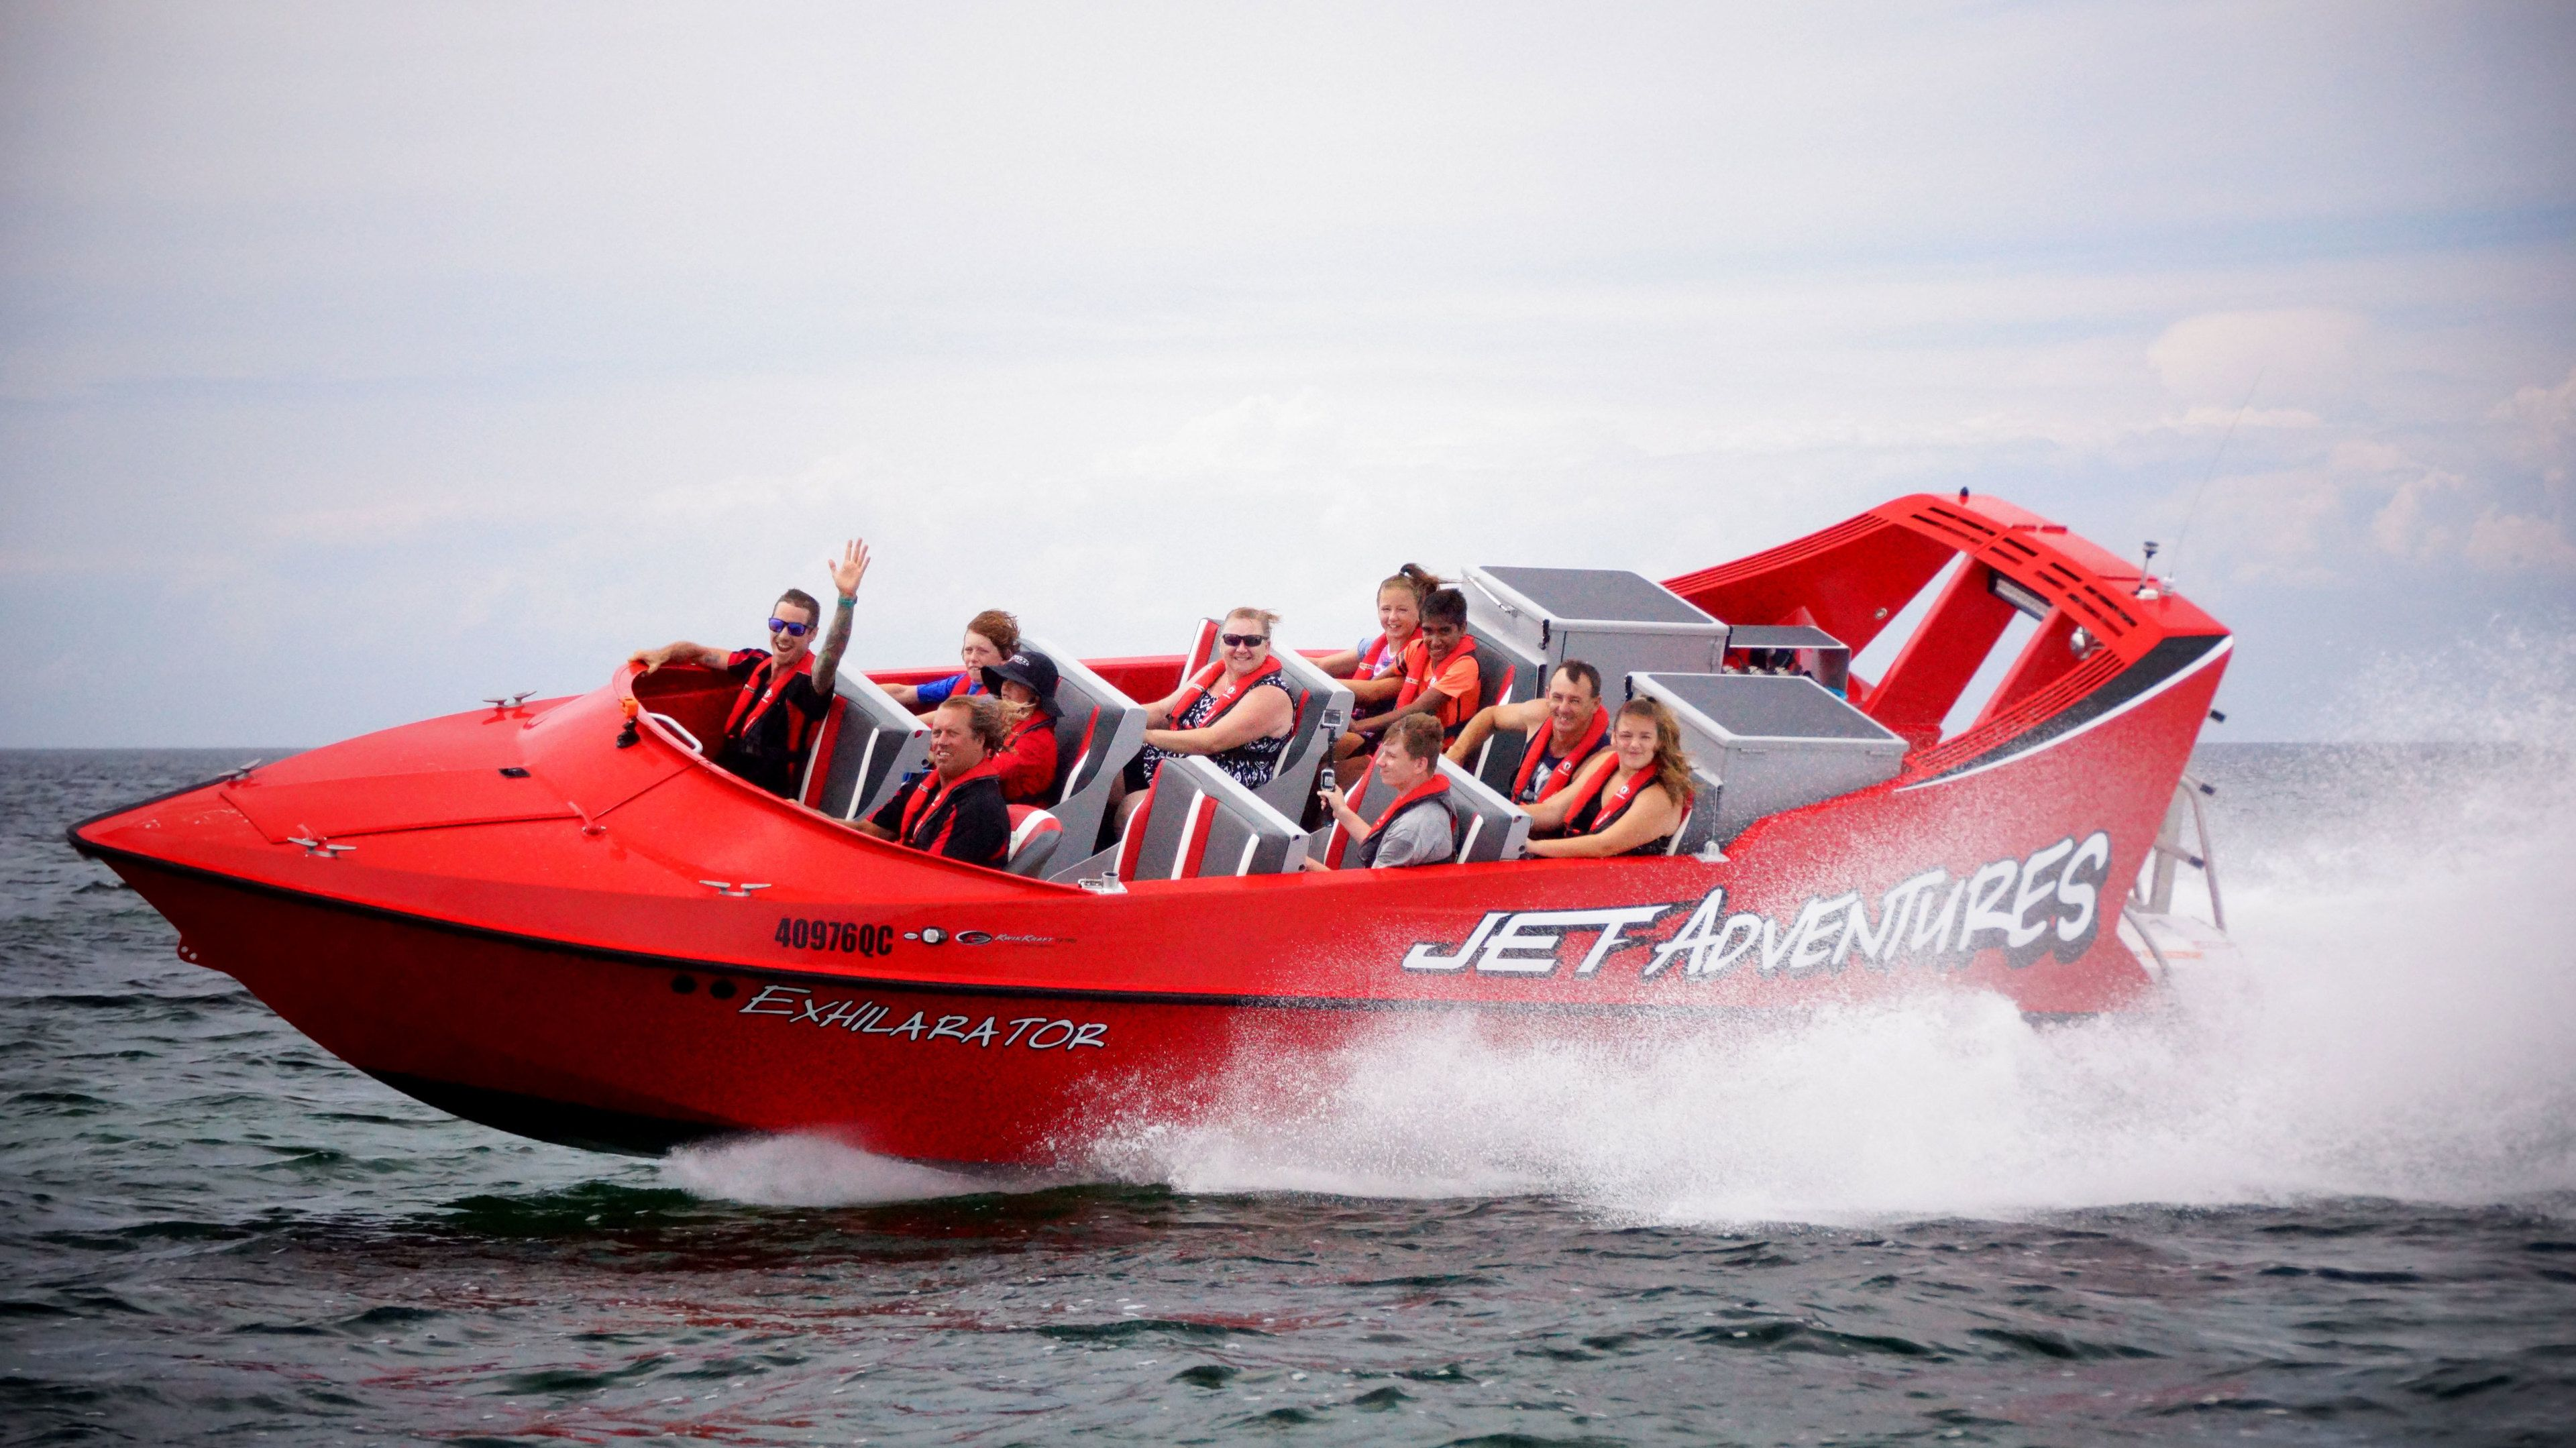 Jet boat on the water in Perth